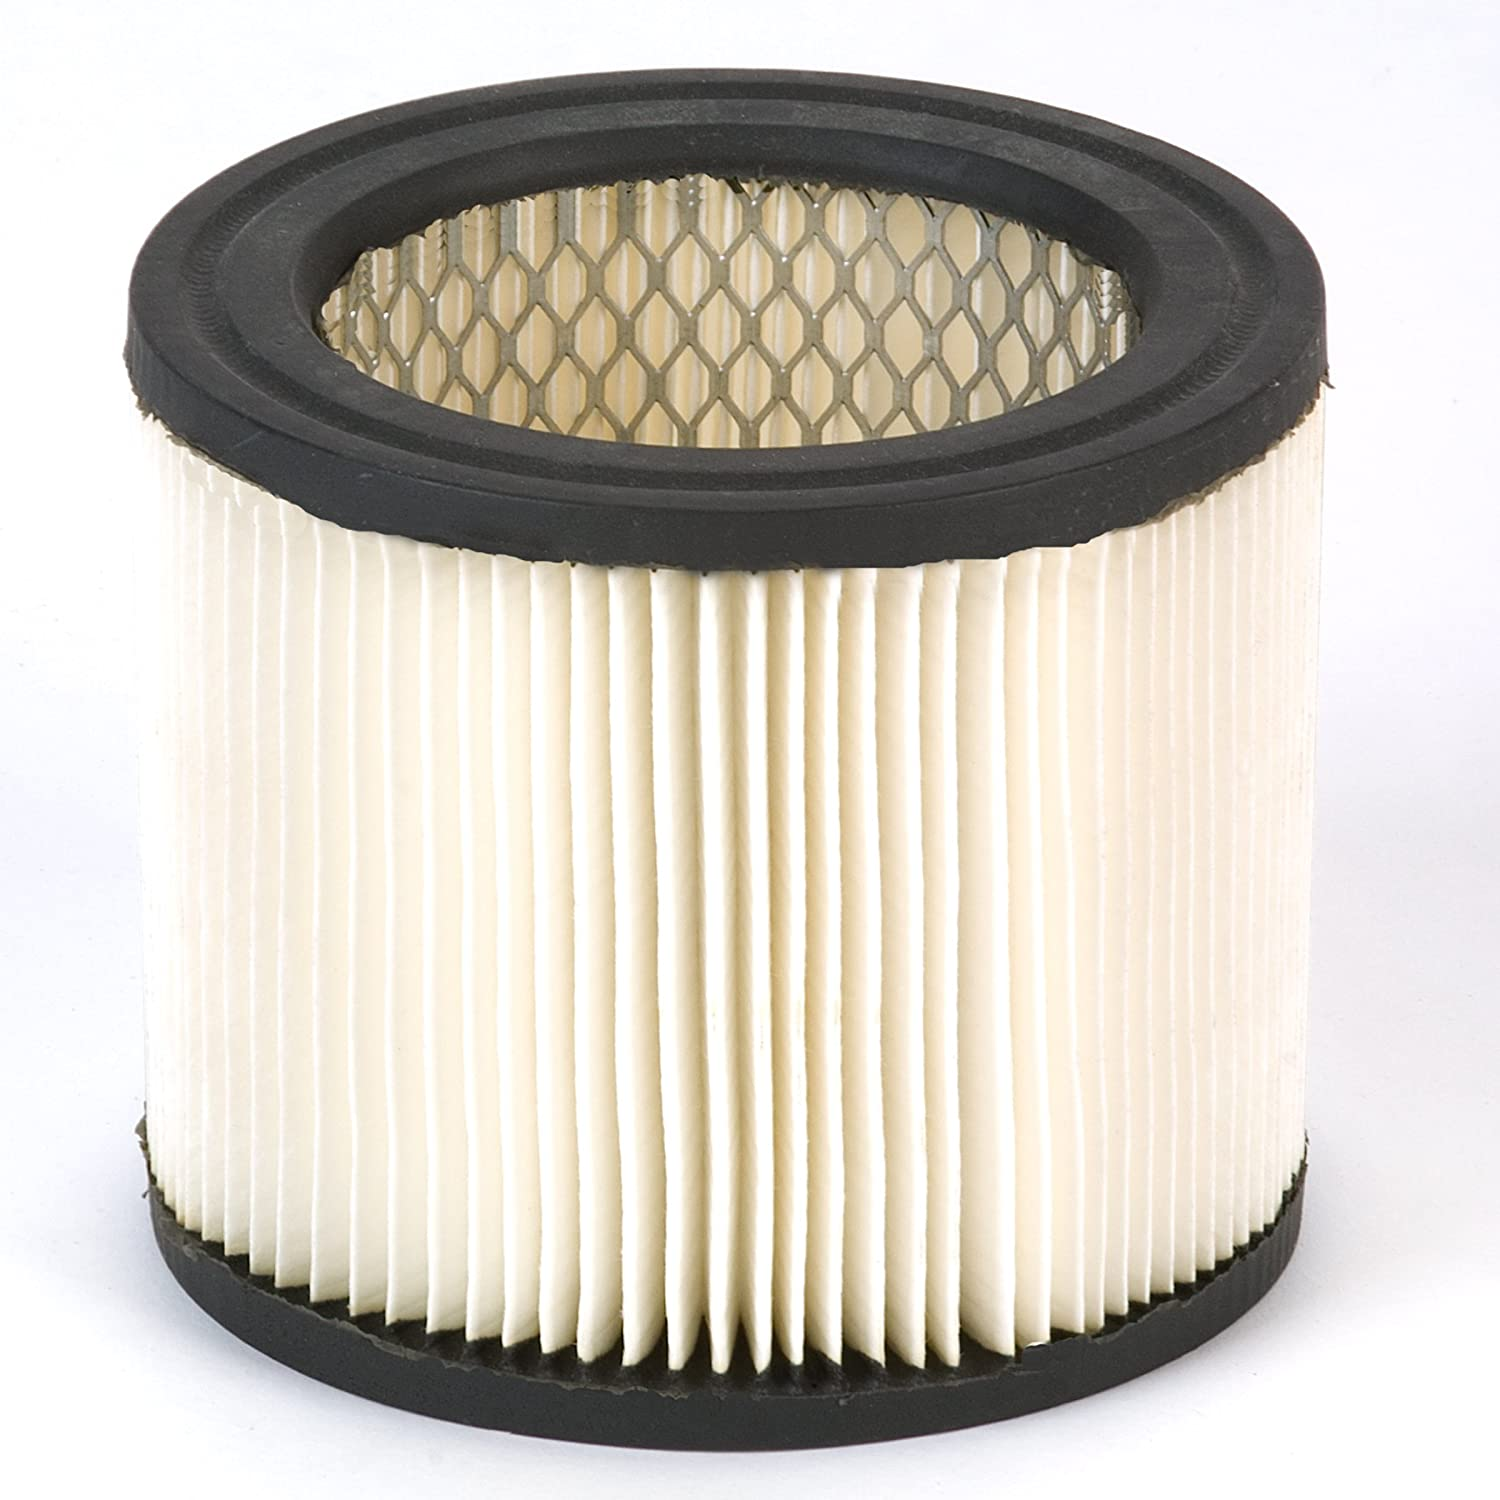 Shop Vac 903-98 Hangup Wet/Dry Vacuum Cartridge Filter